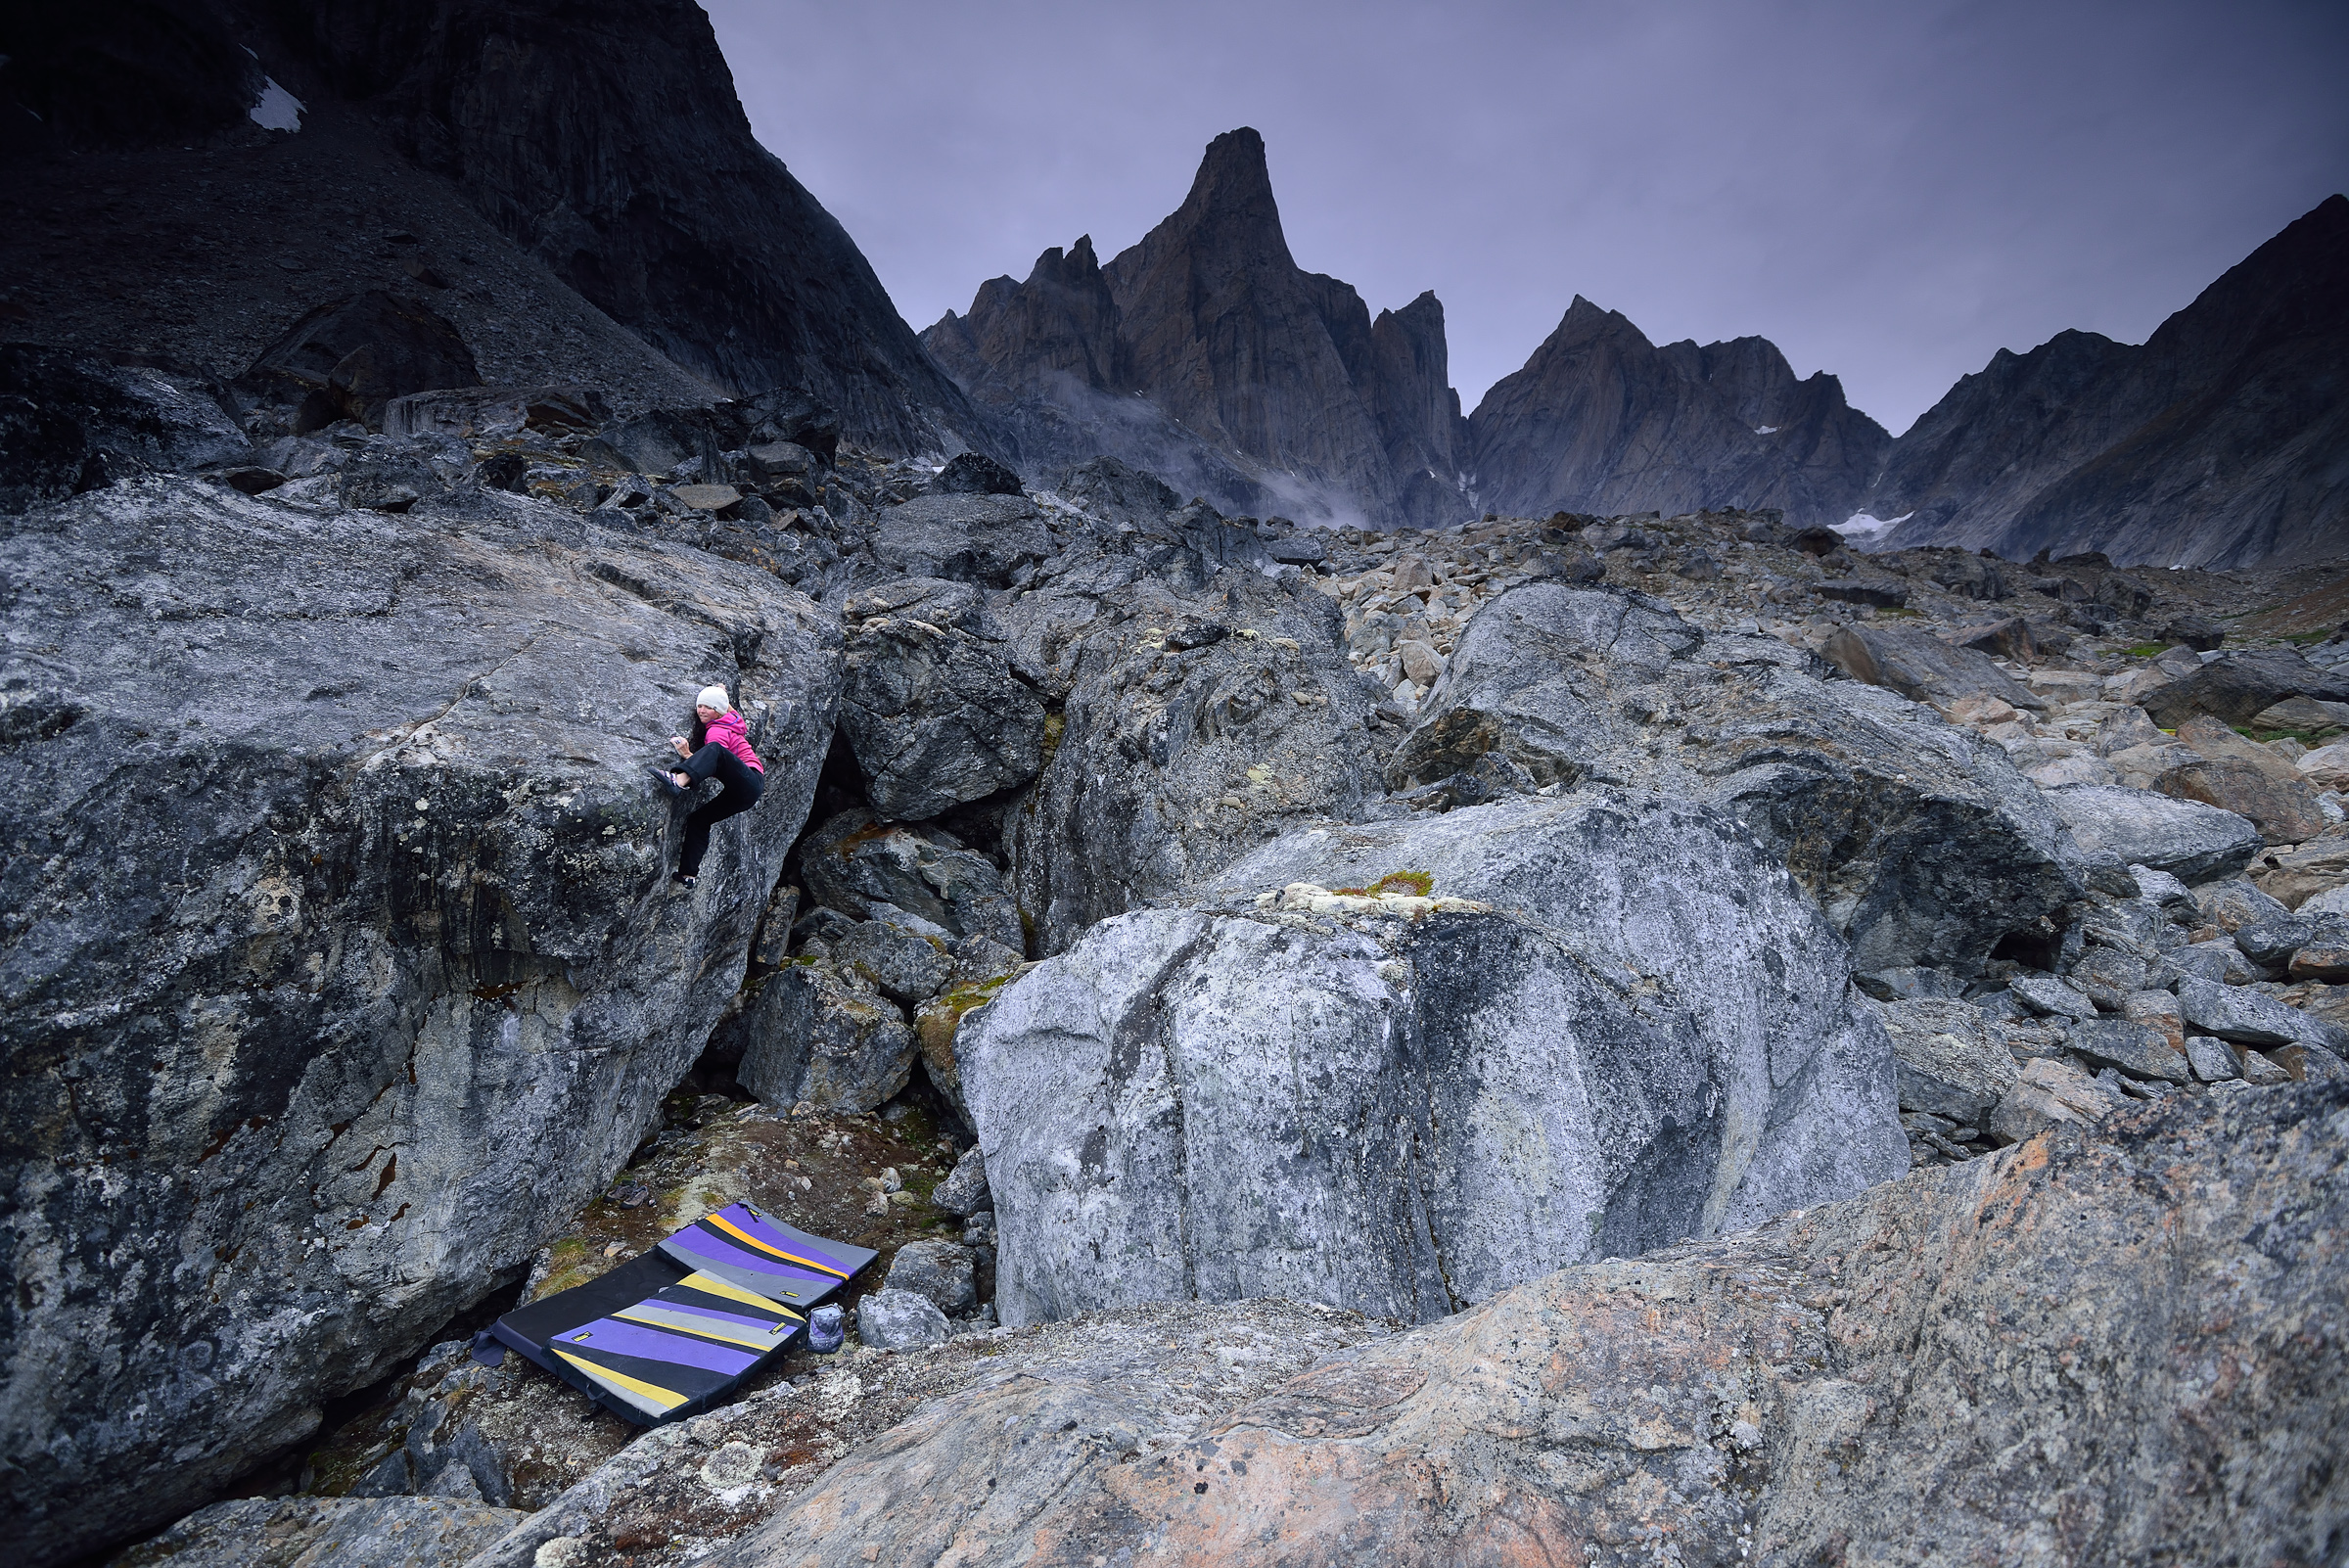 Bouldering in Southeast Greenland